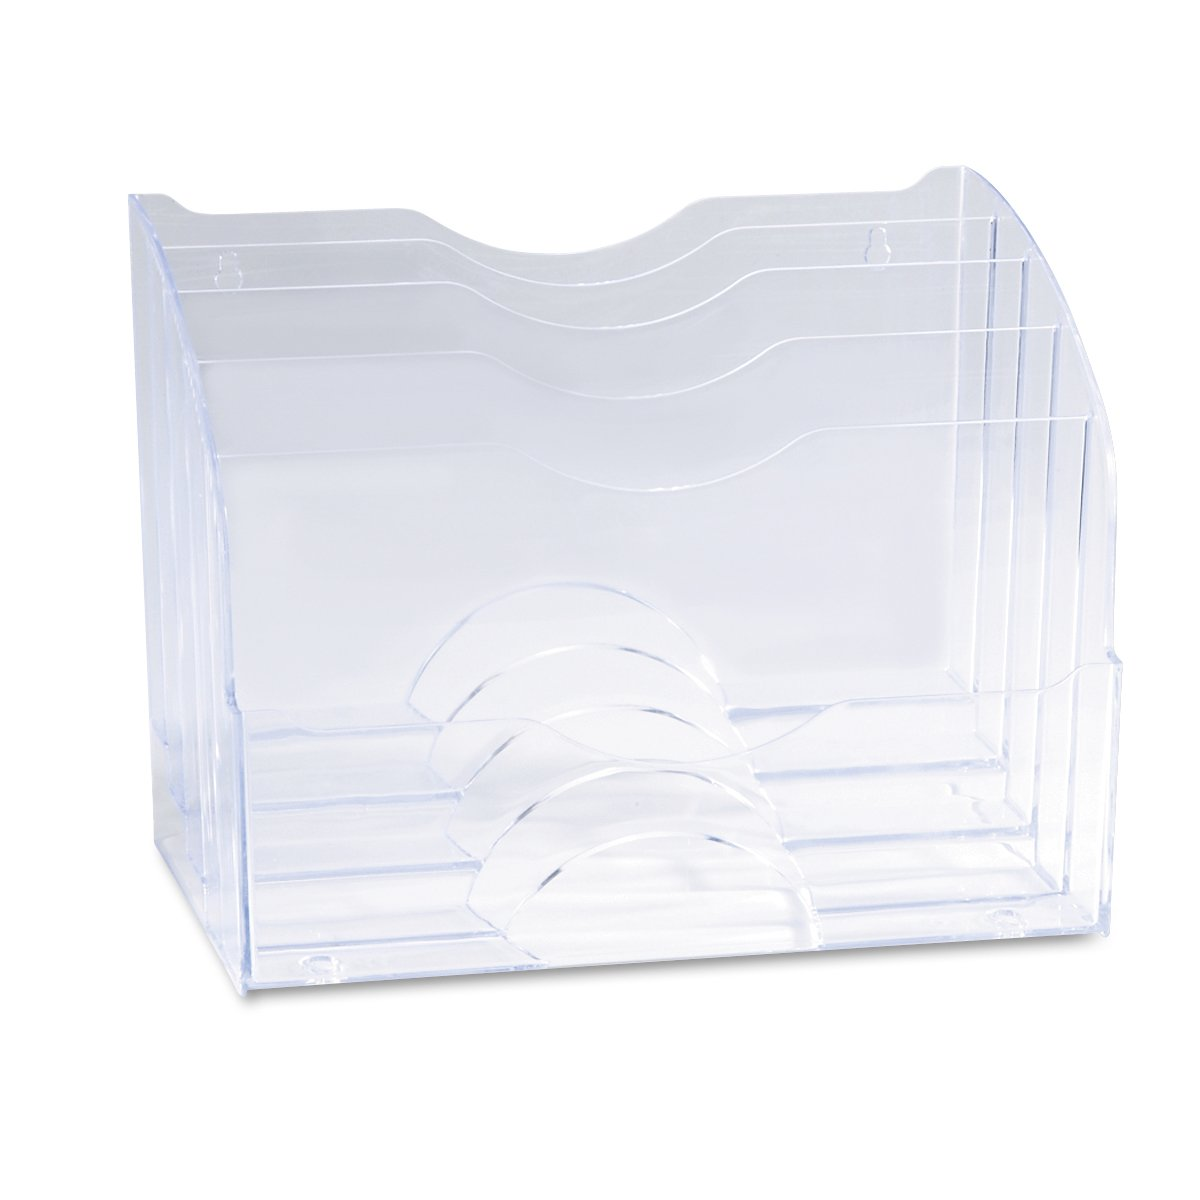 Rubbermaid 94610 Optimizers Multifunctional Two-Way Organizer, 8-3/4w x 10-3/8d x 13-5/8h, Clear by Rubbermaid